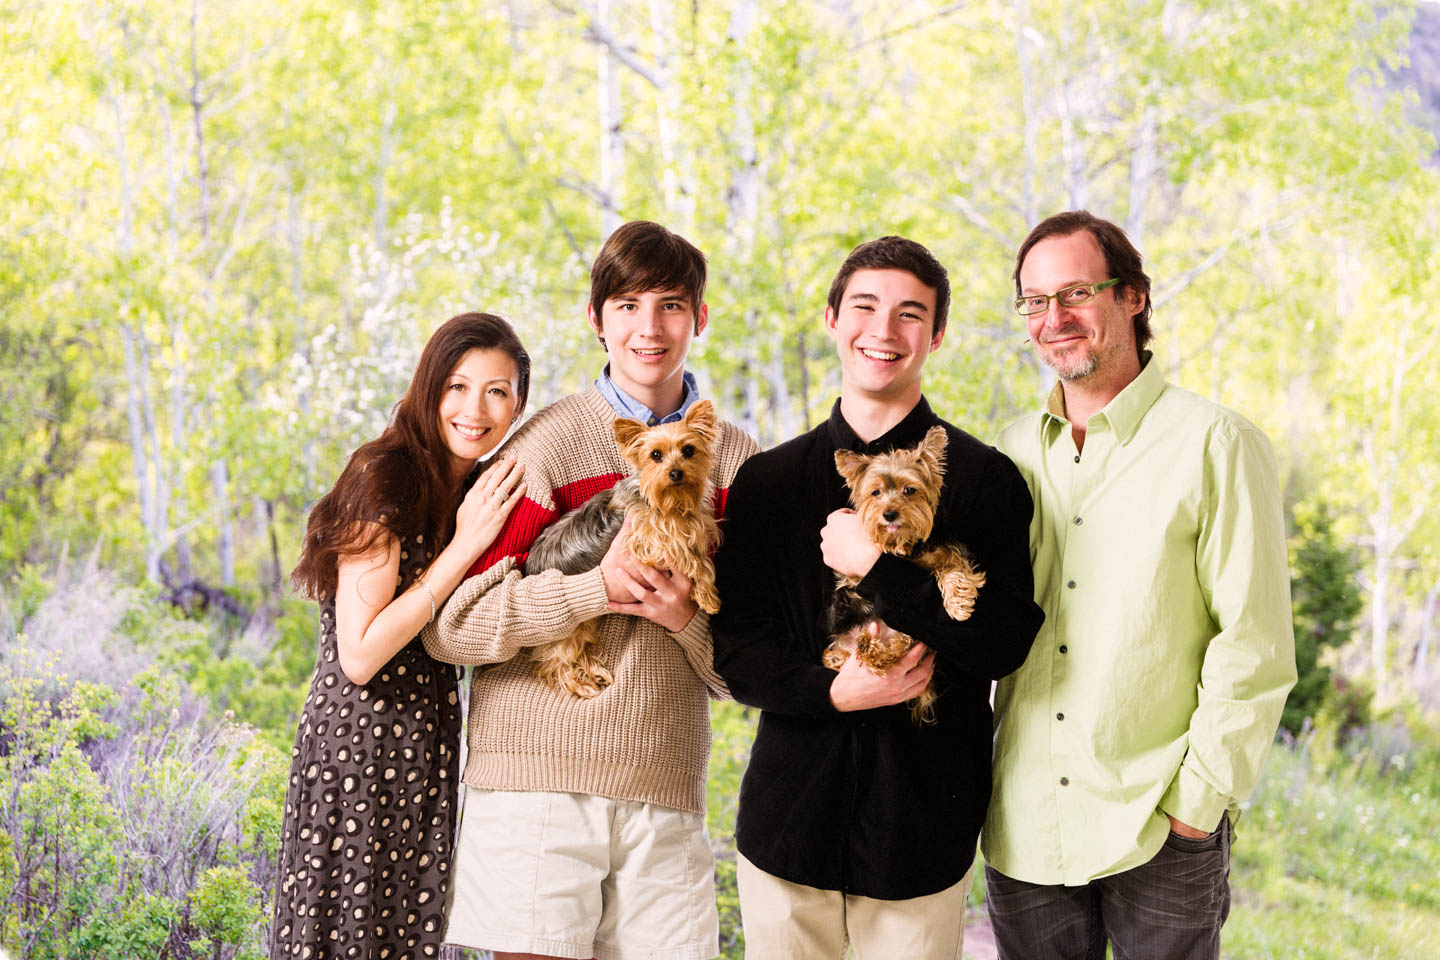 Family Portraits In Studio With Some Creative Photoshop Dav D Photography